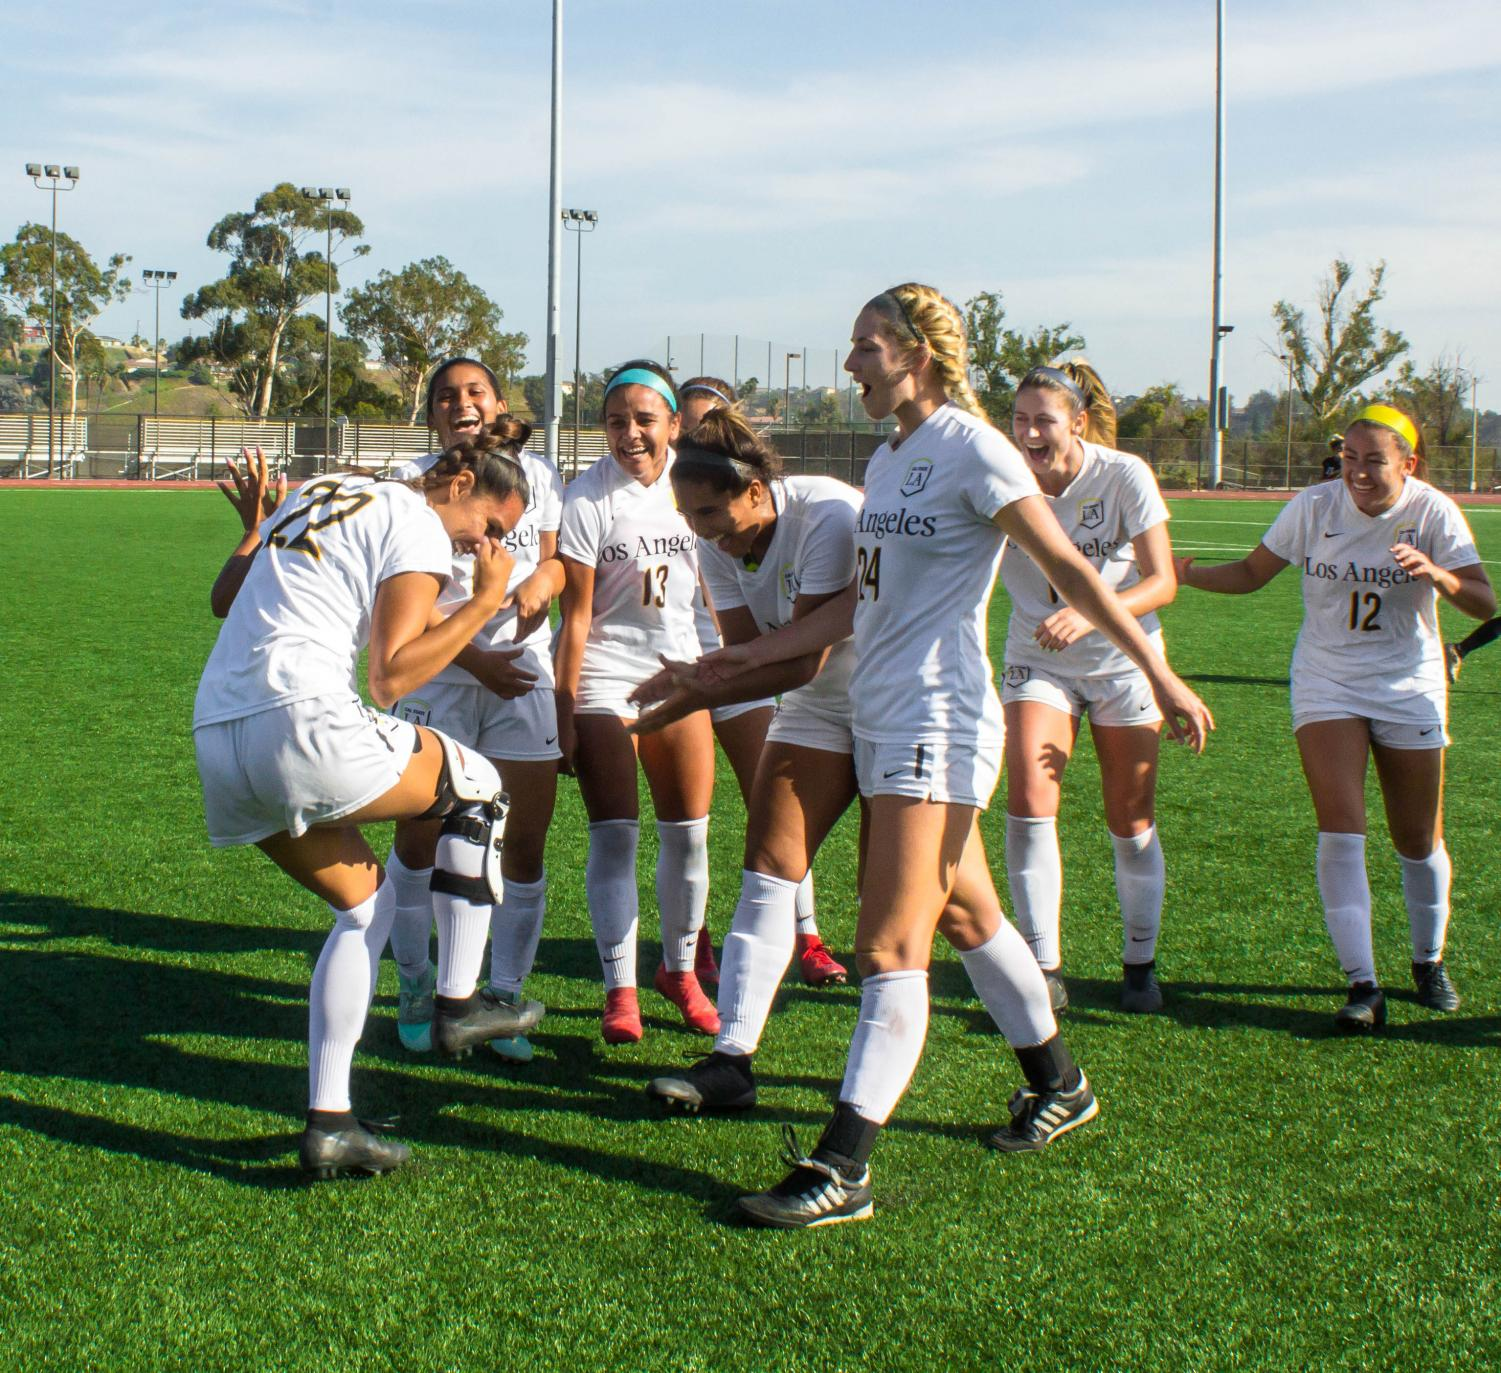 Cal State LA's Women's Soccer team's post goal celebration was one of two goals that lead them to a 2-0 shutout against Cal State Dominguez Hills on Sept. 26, 2018 at the Jesse Owens Stadium.  Photo: Micheal Griego